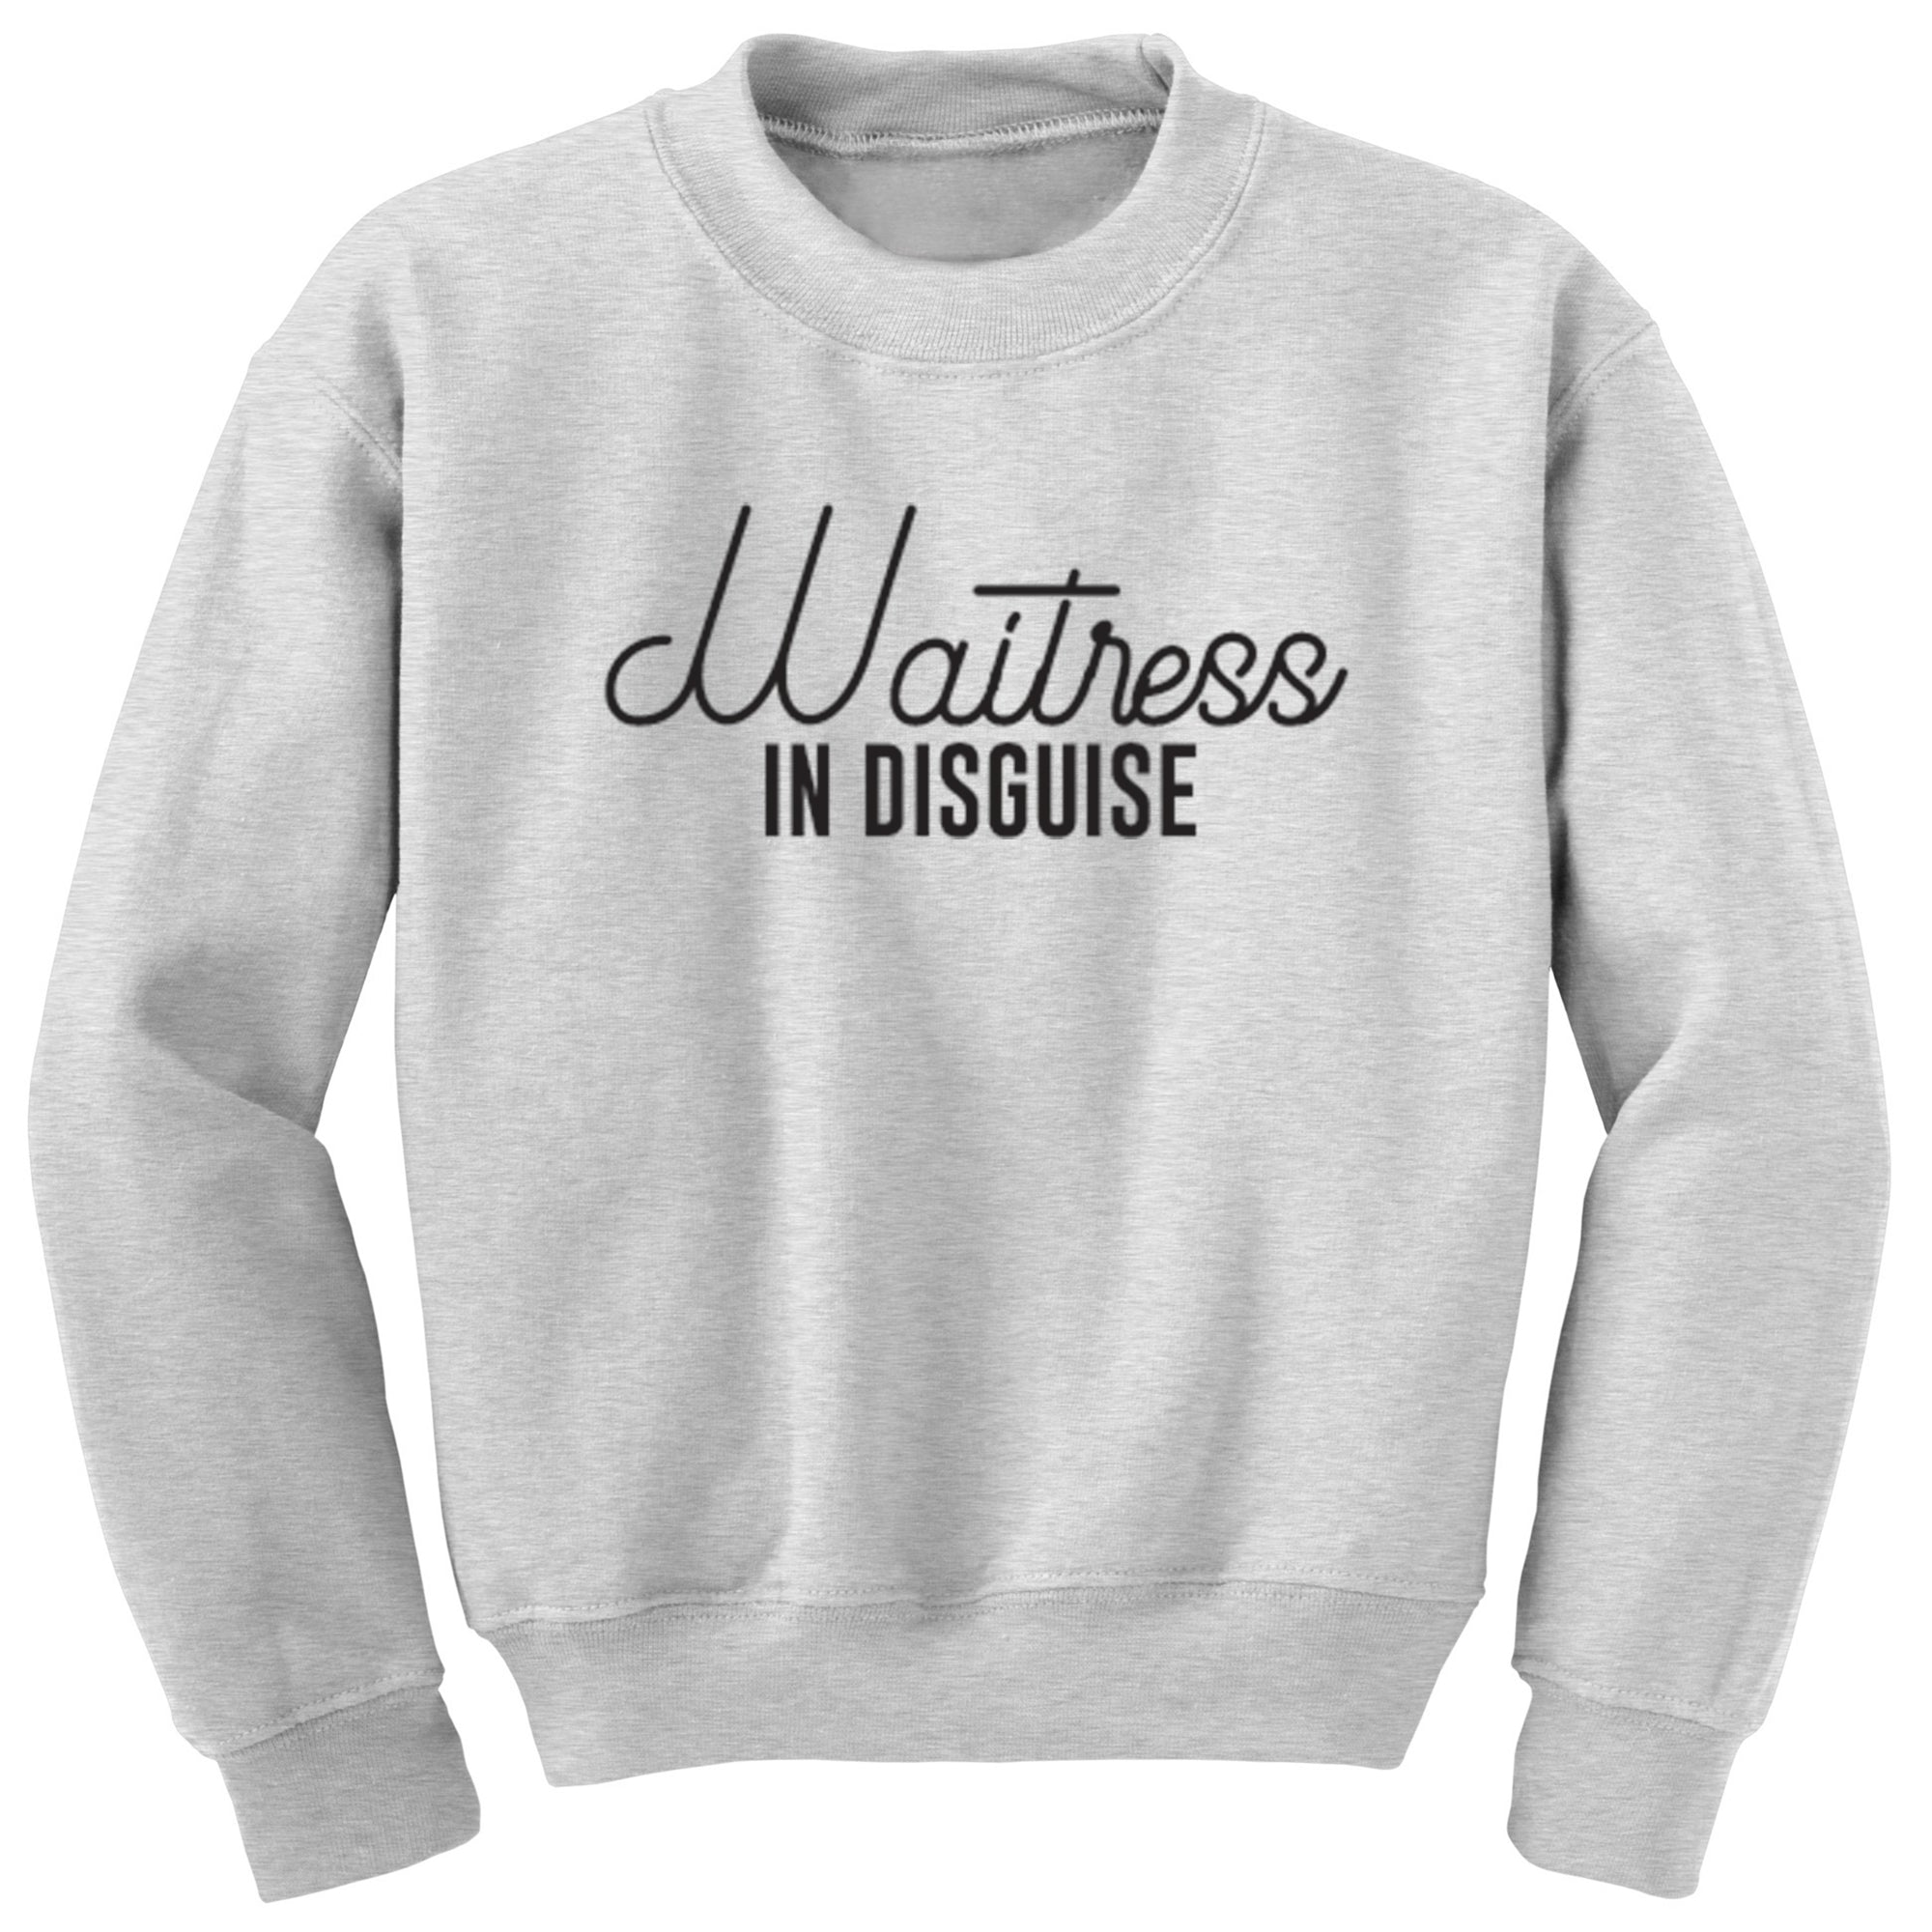 Waitress In Disguise Unisex Jumper S0060 - Illustrated Identity Ltd.